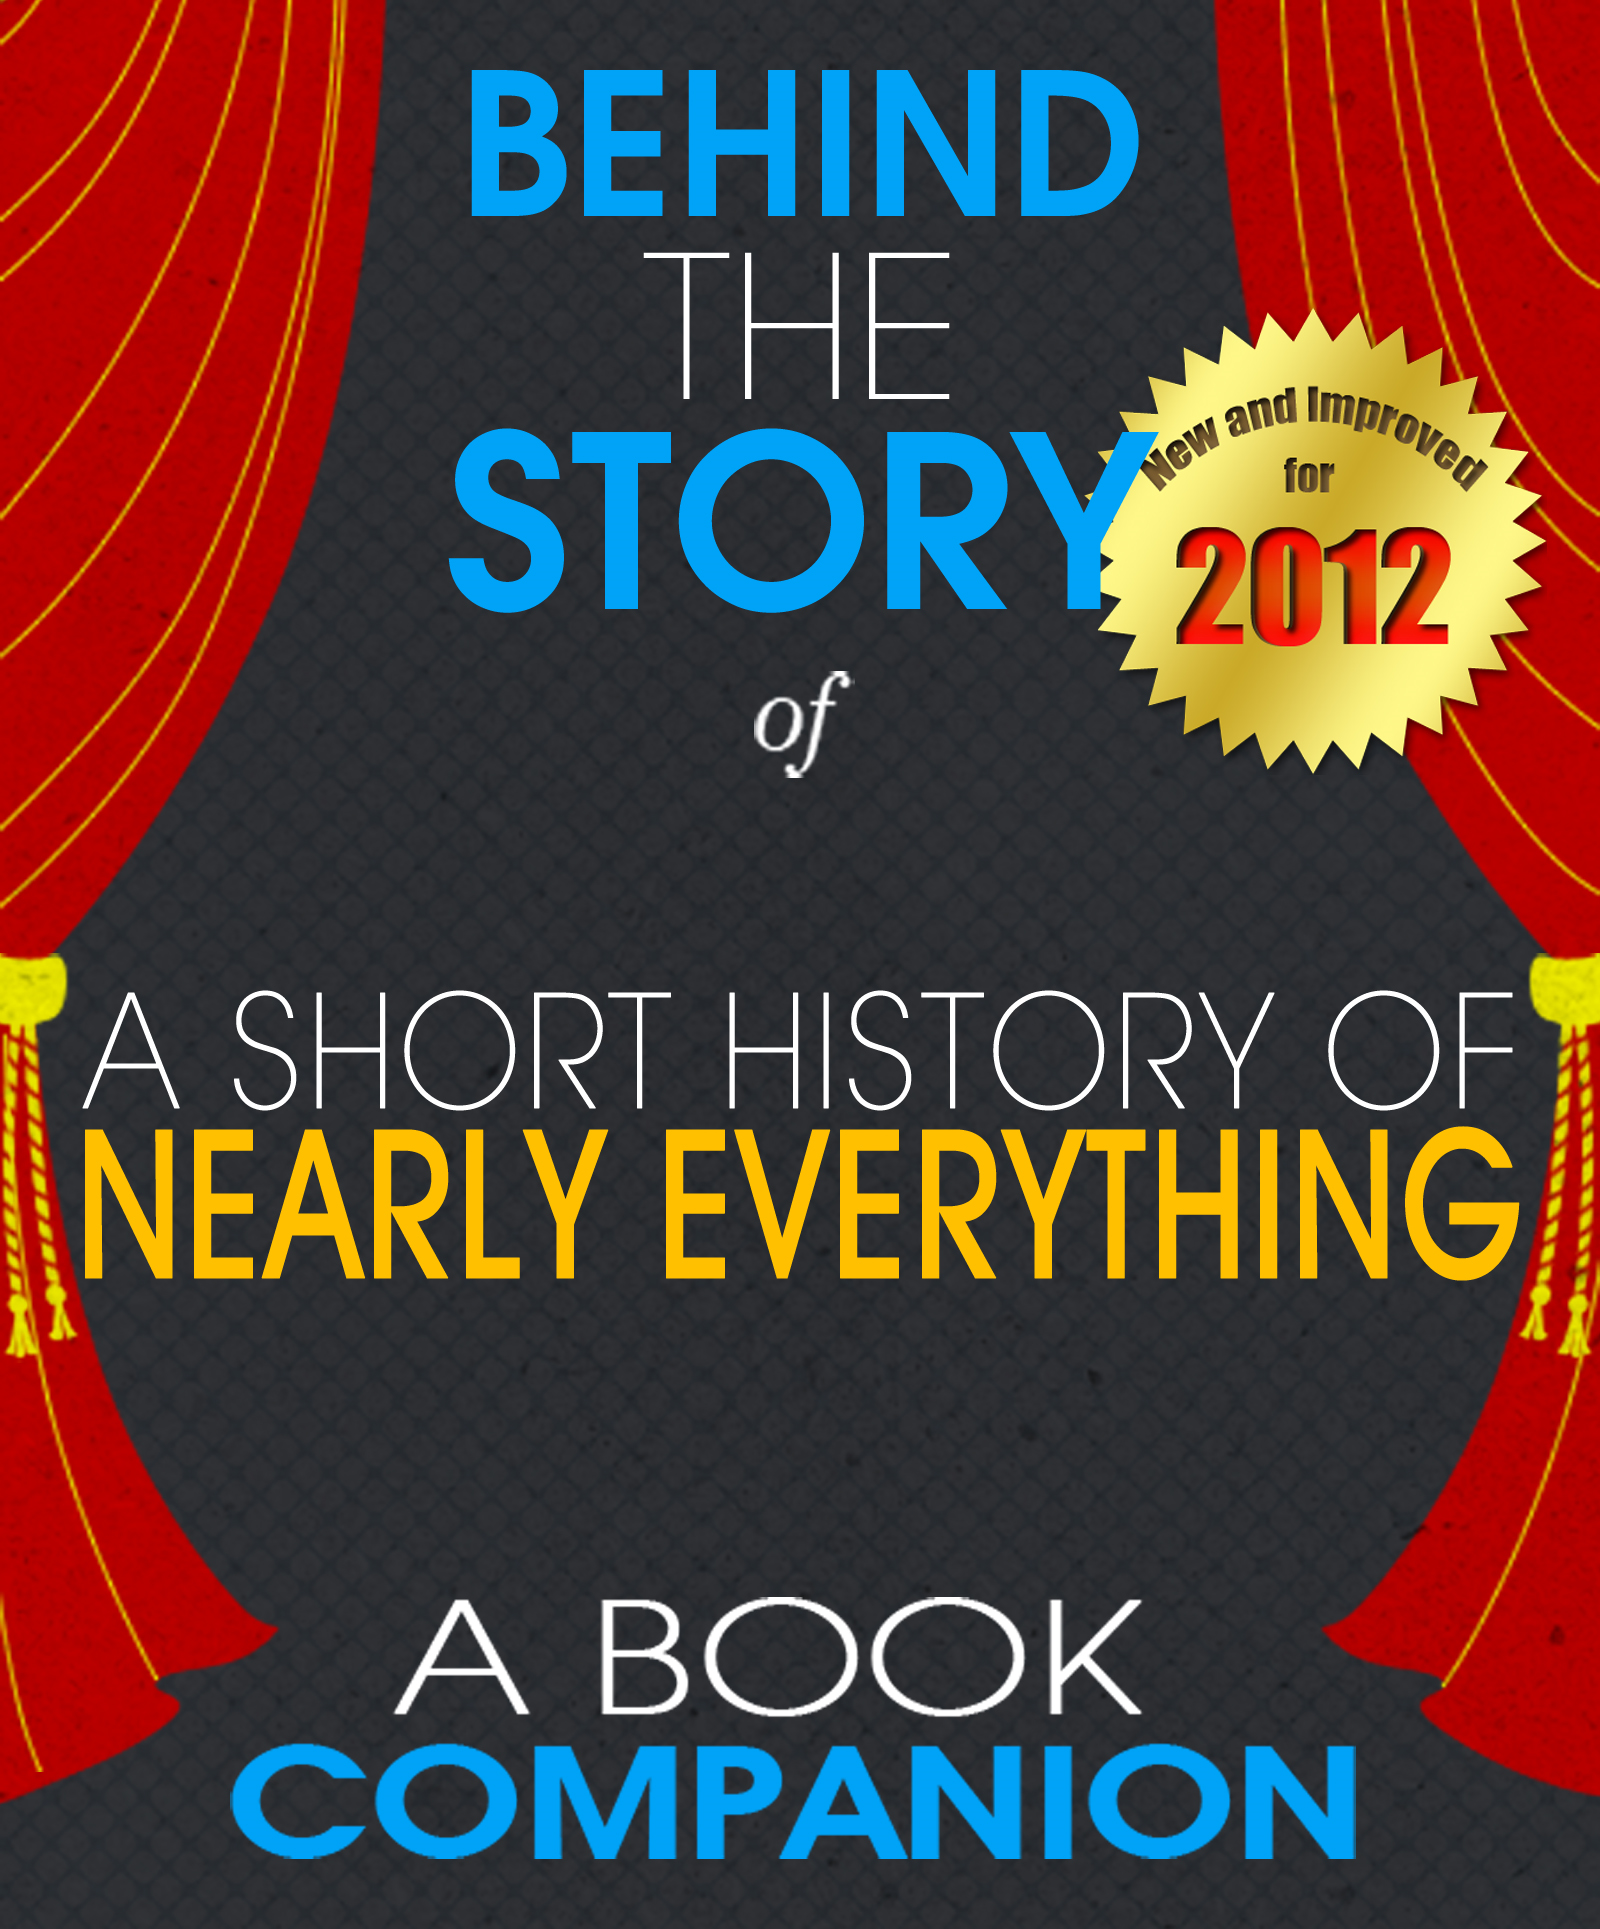 A Short History of Nearly Everything: Behind the Story